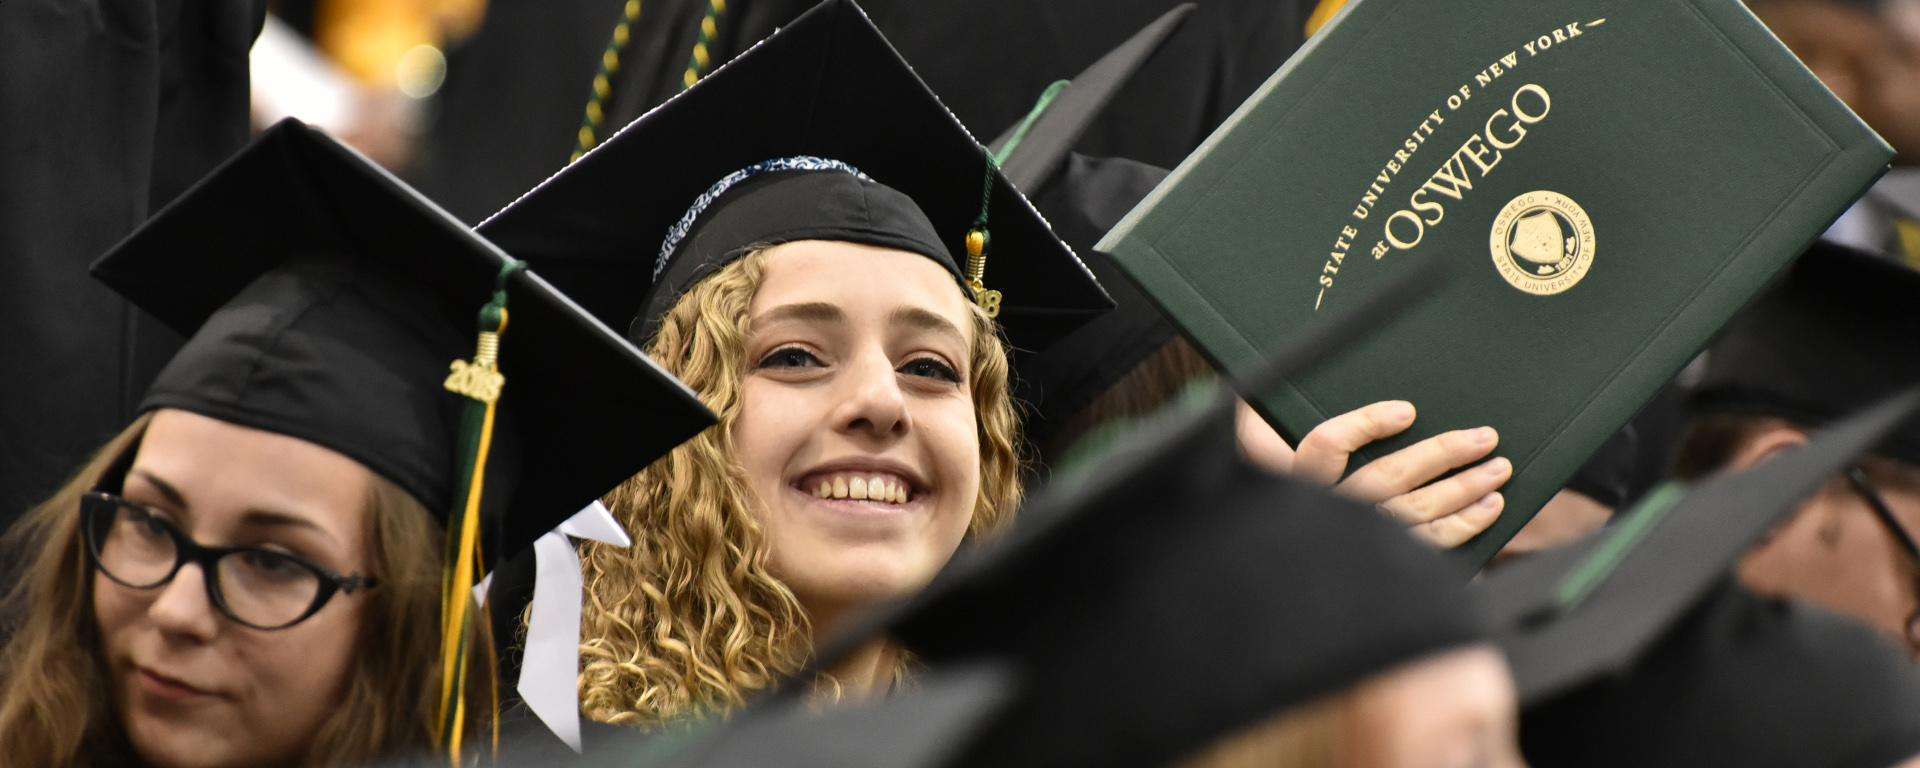 Student holds up diploma cover at Commencement